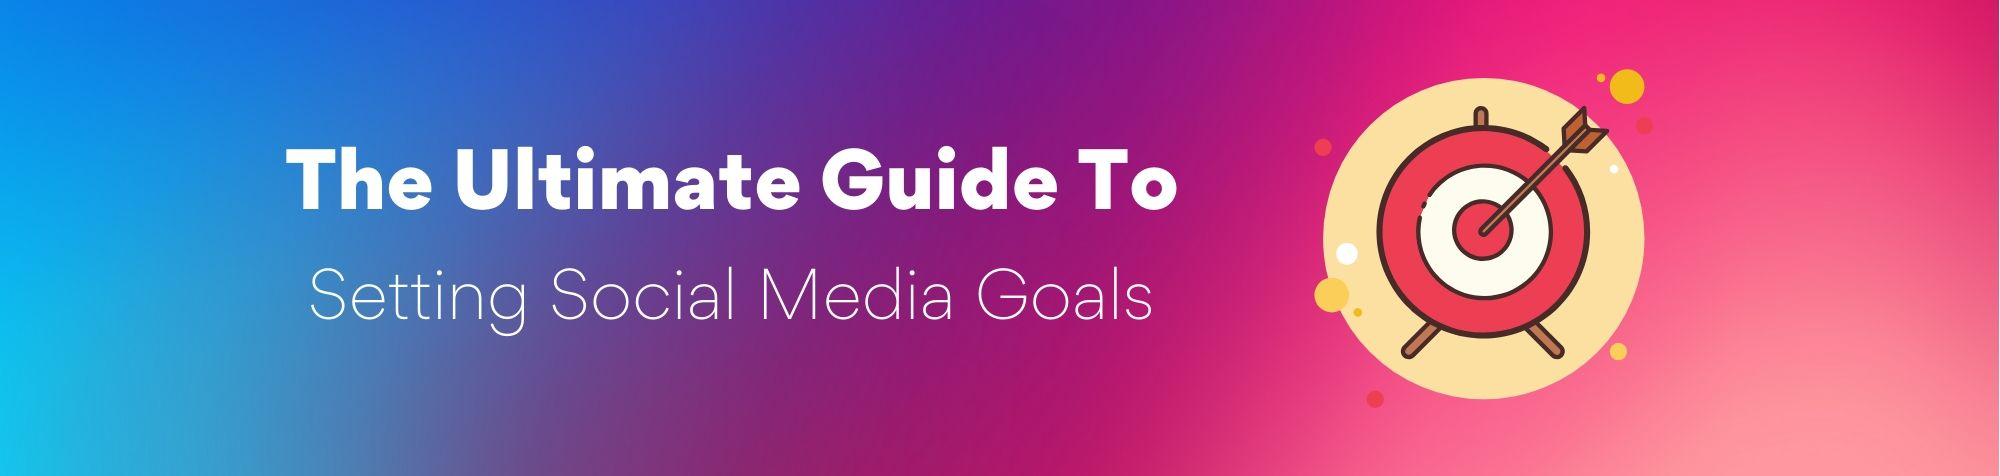 The Ultimate Guide To Setting Social Media Goals Ebook